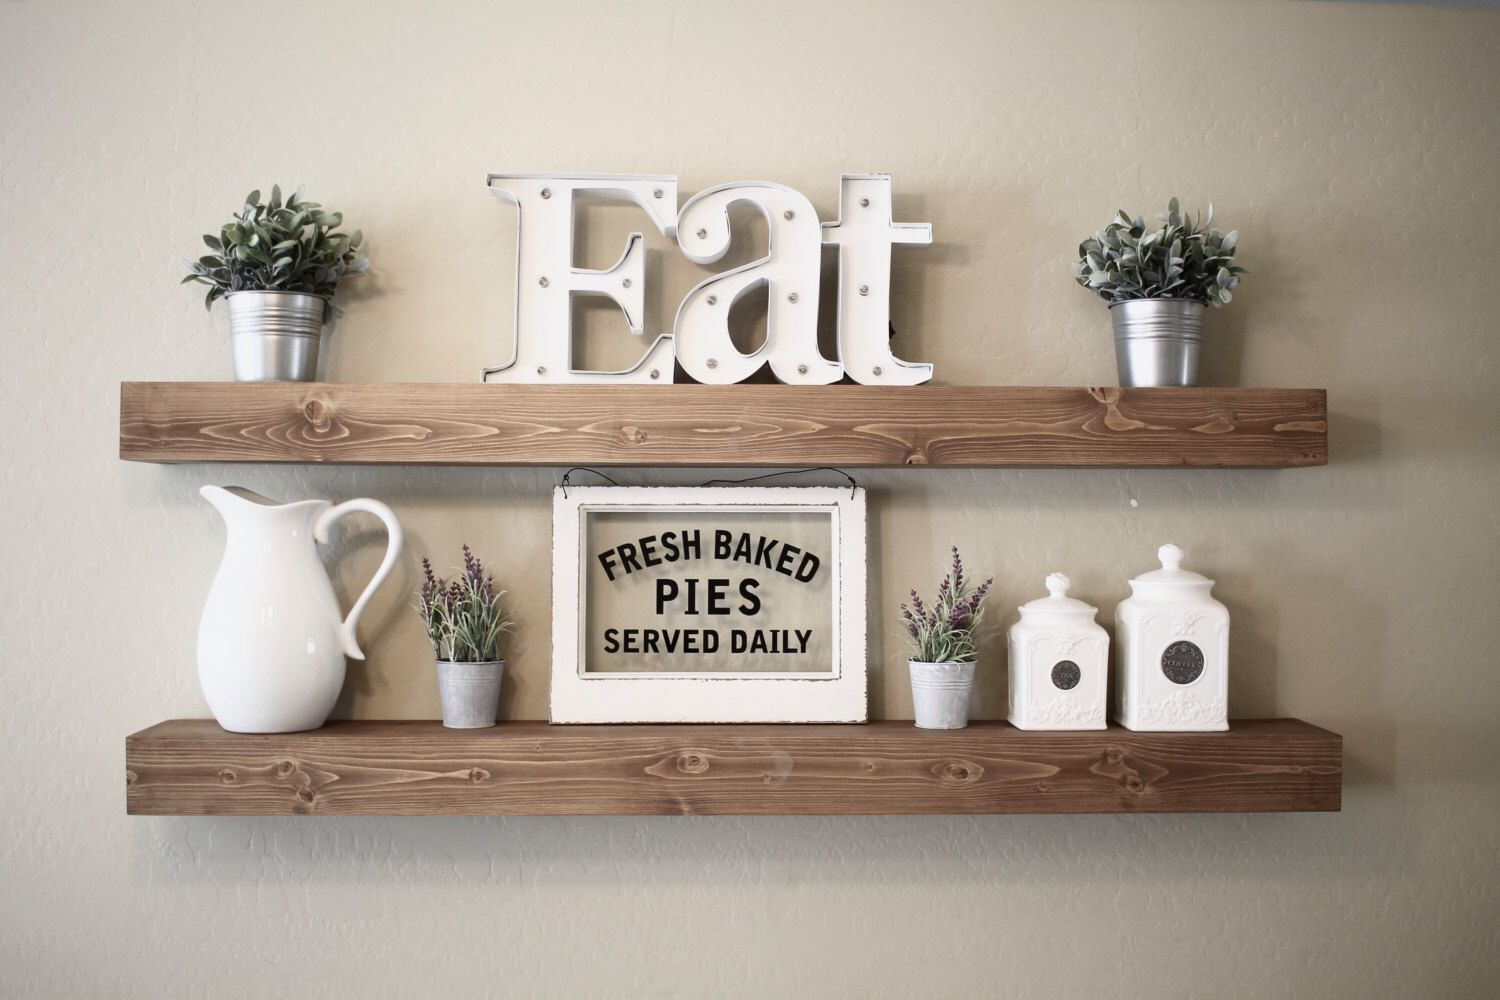 Pin by brittneyk on decorating ideas pinterest farmhouse decor